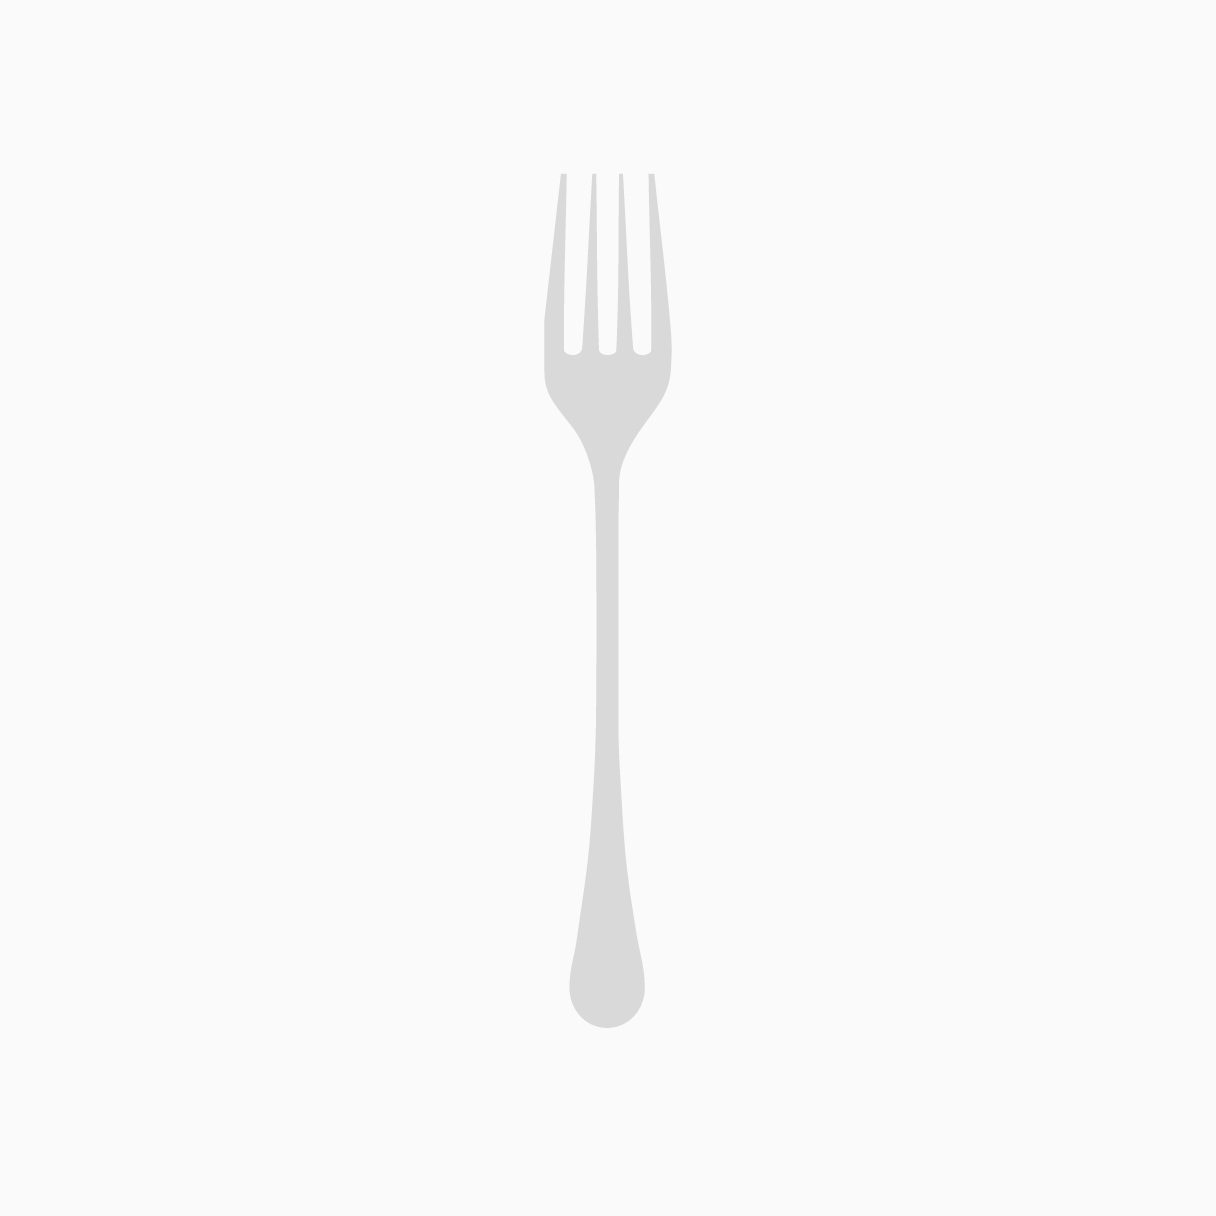 Vegetable / Salad Fork